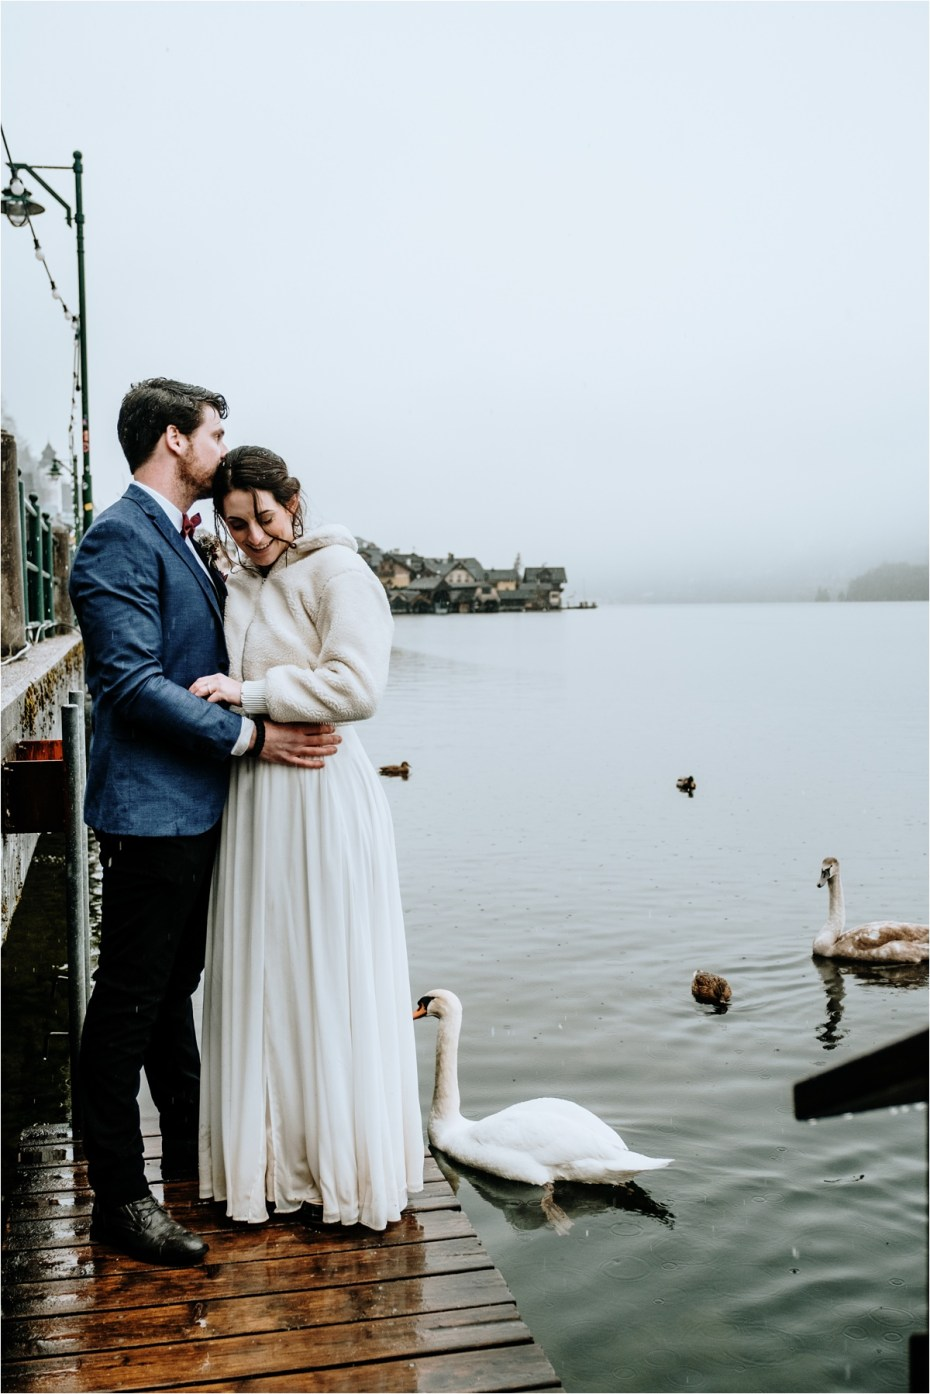 Swans swim up to the bride and groom after their Hallstatt wedding in Austria. Photos by Wild Connections Photography